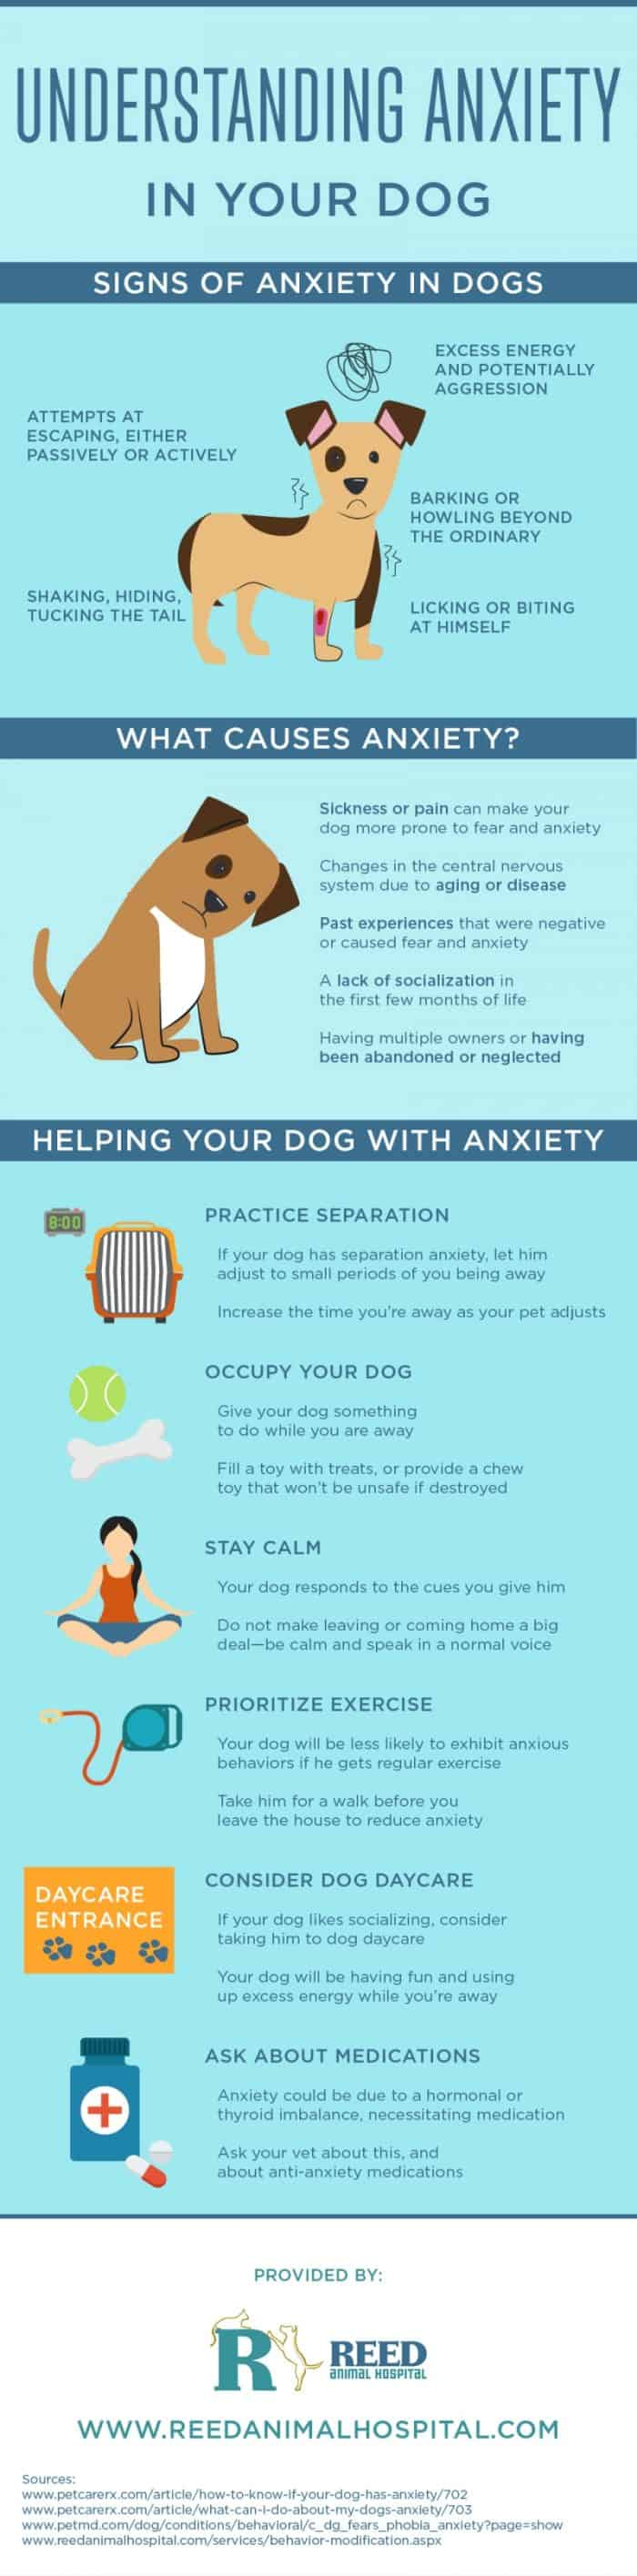 Canine Concern: How To Handle Anxiety In Your Dog | Daily ...